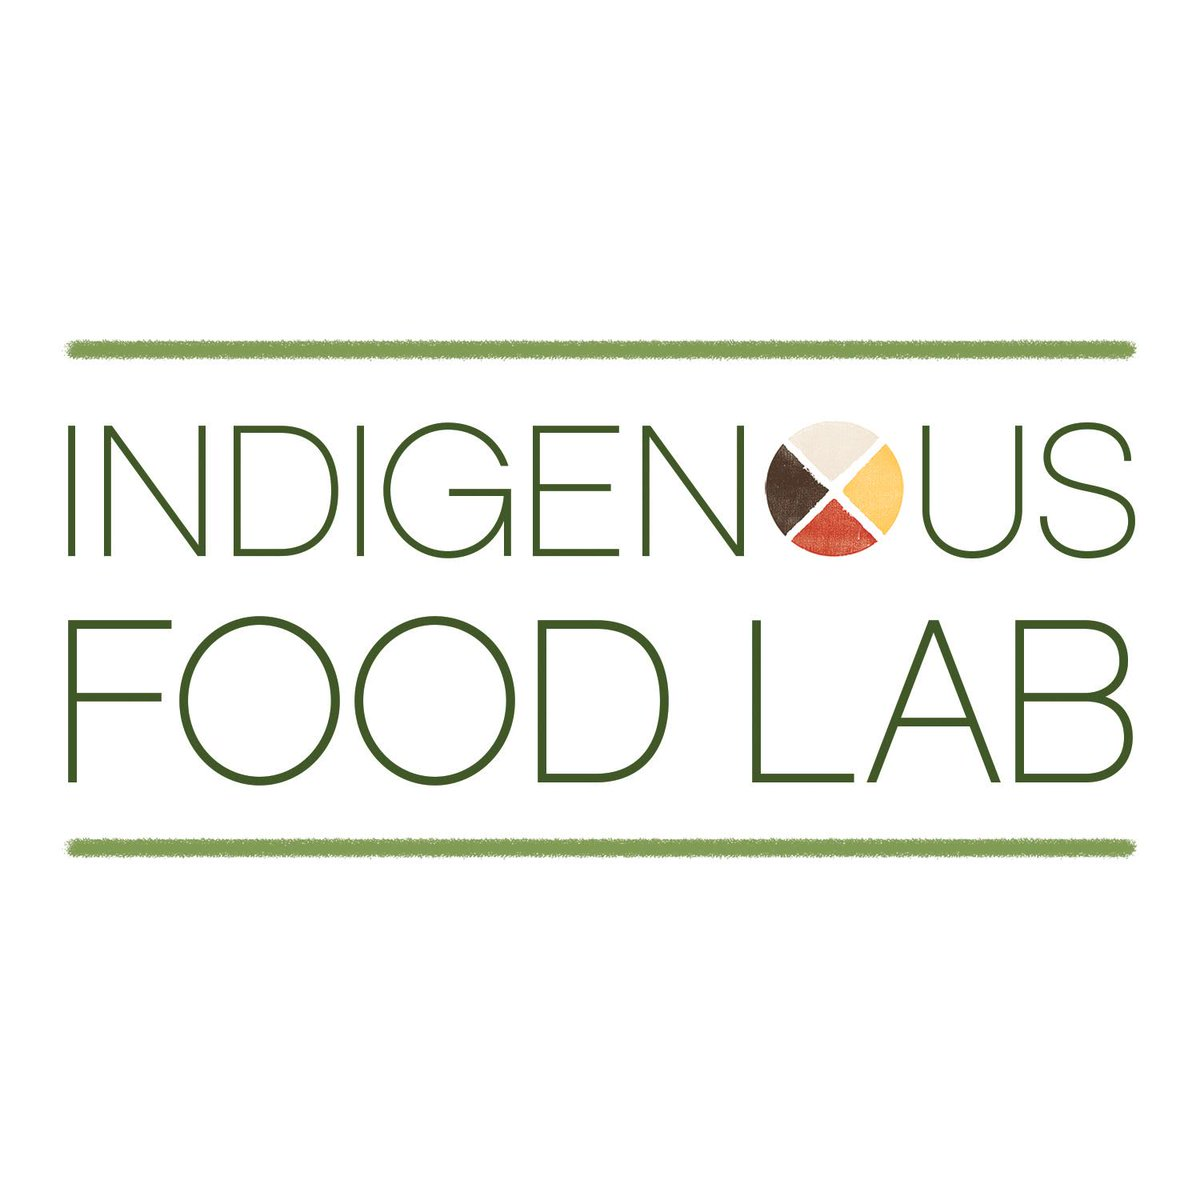 Today is #GivingTuesday which is the day during the holidays that we give back instead of consume. Consider supporting @indi_food_lab Thx! mailchi.mp/a48acd2a7eca/h…